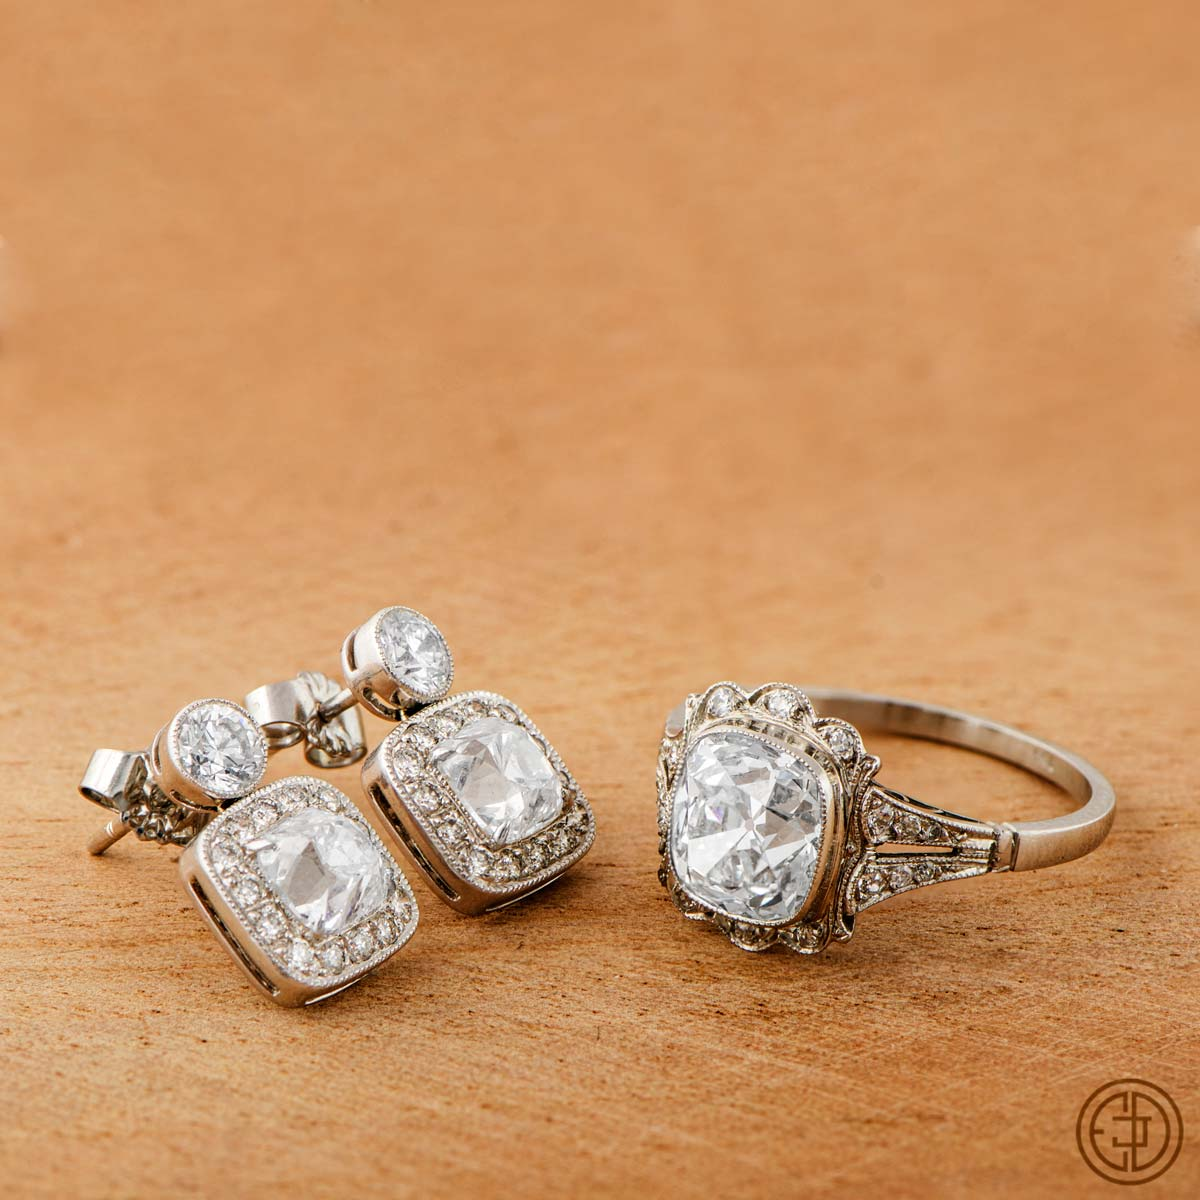 Vintage engagement ring and estate earrings set for Jewelry wedding rings